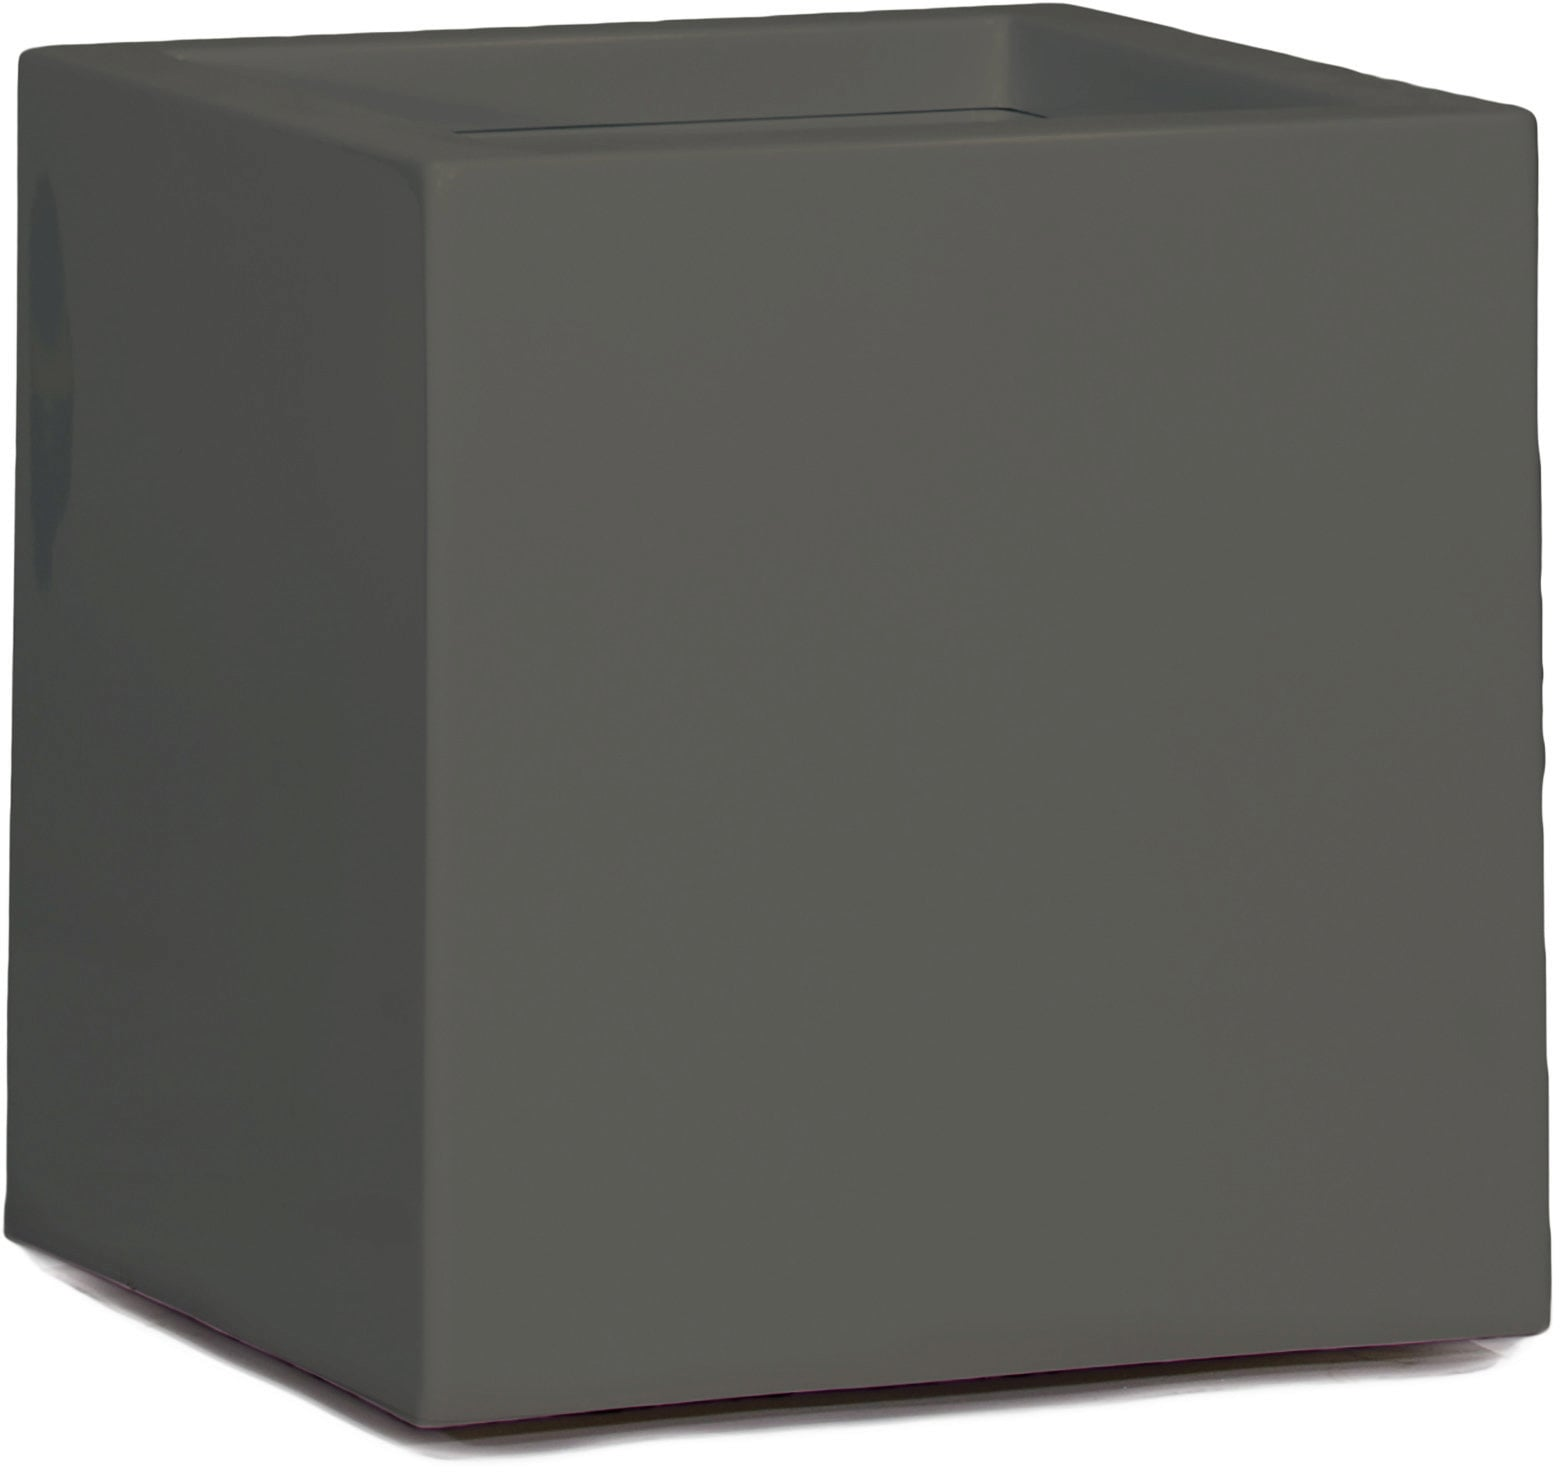 Cubus Online Shop Fleur Ami Premium Cubus Planter In Quartz Grey